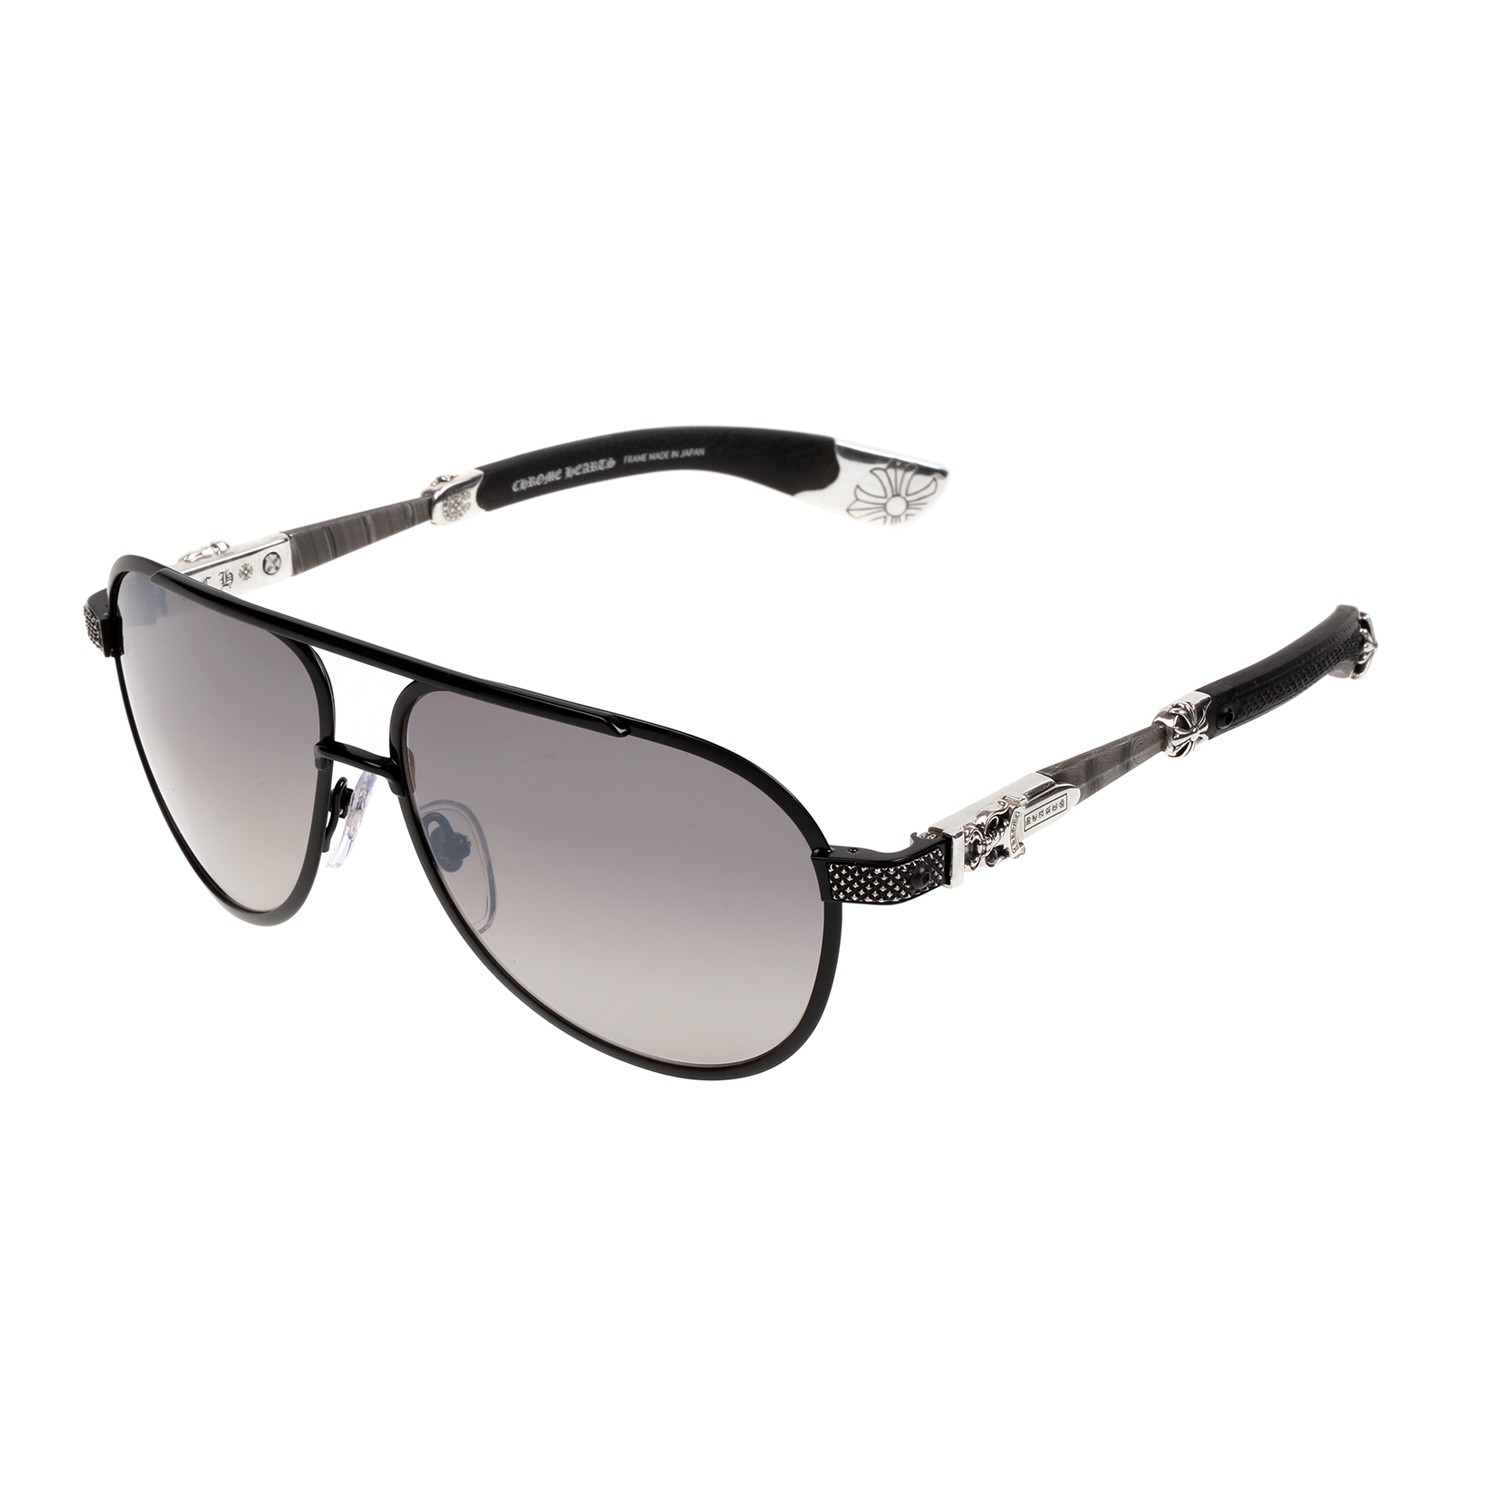 bfa2b815fc7a2 Chrome Hearts Sunglasses « Heritage Malta